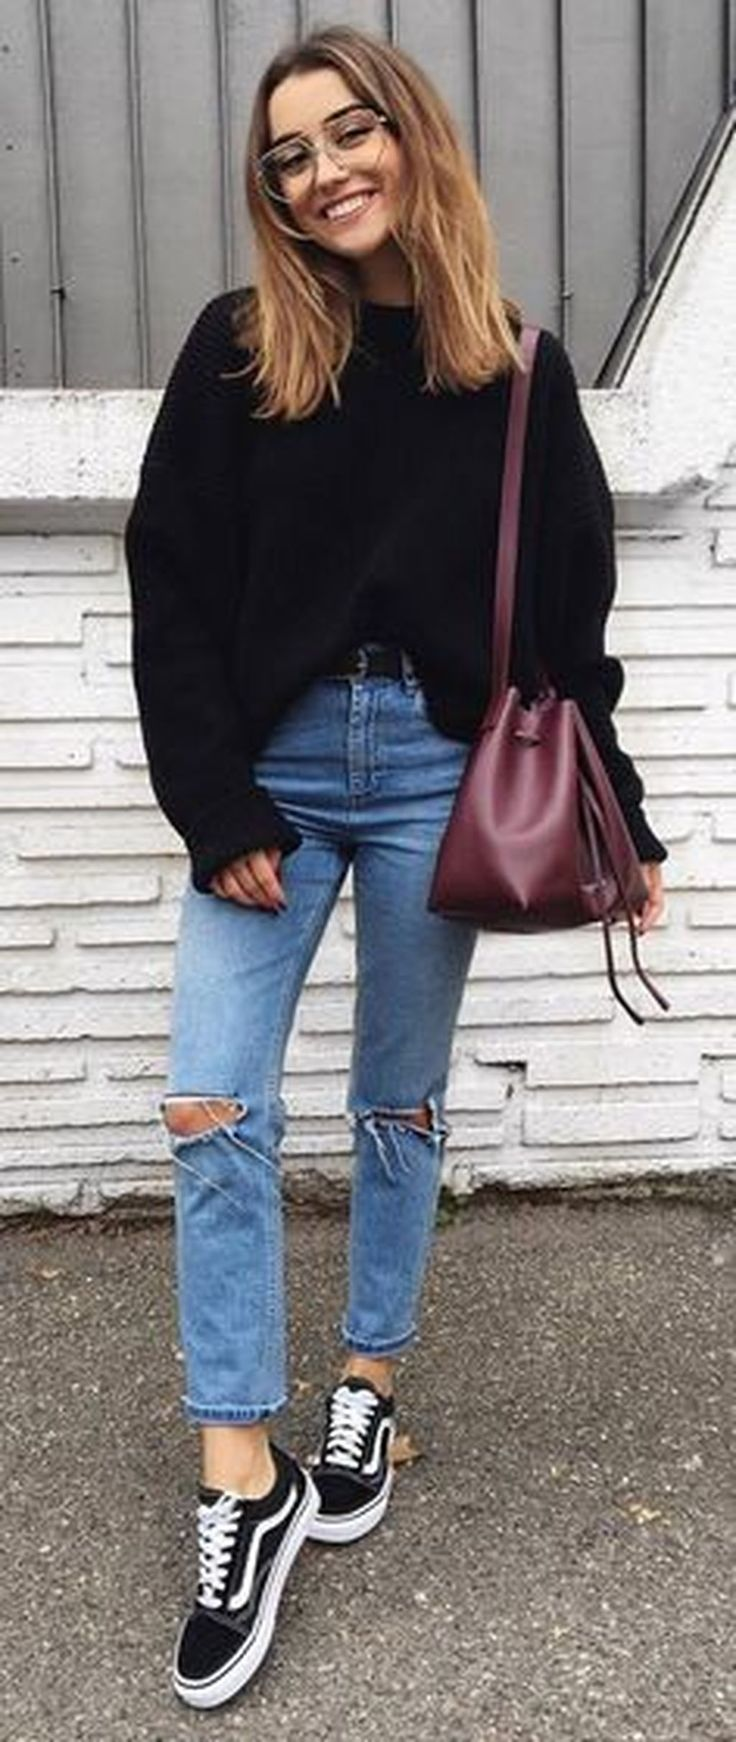 best 25+ women's cool outfits ideas on pinterest   cool nikes